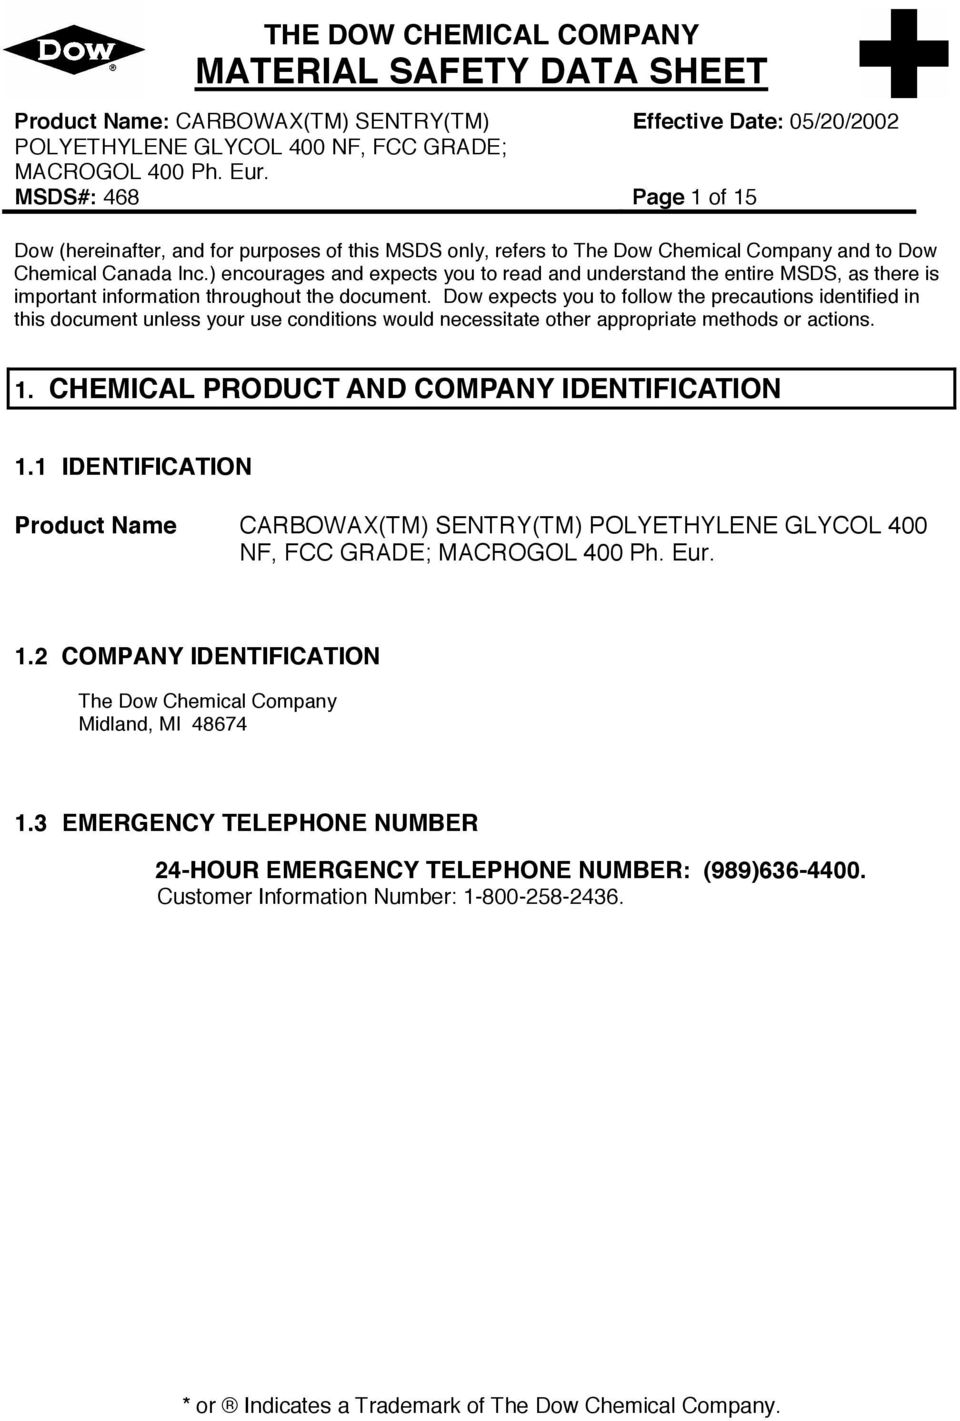 THE DOW CHEMICAL COMPANY MATERIAL SAFETY DATA SHEET - PDF